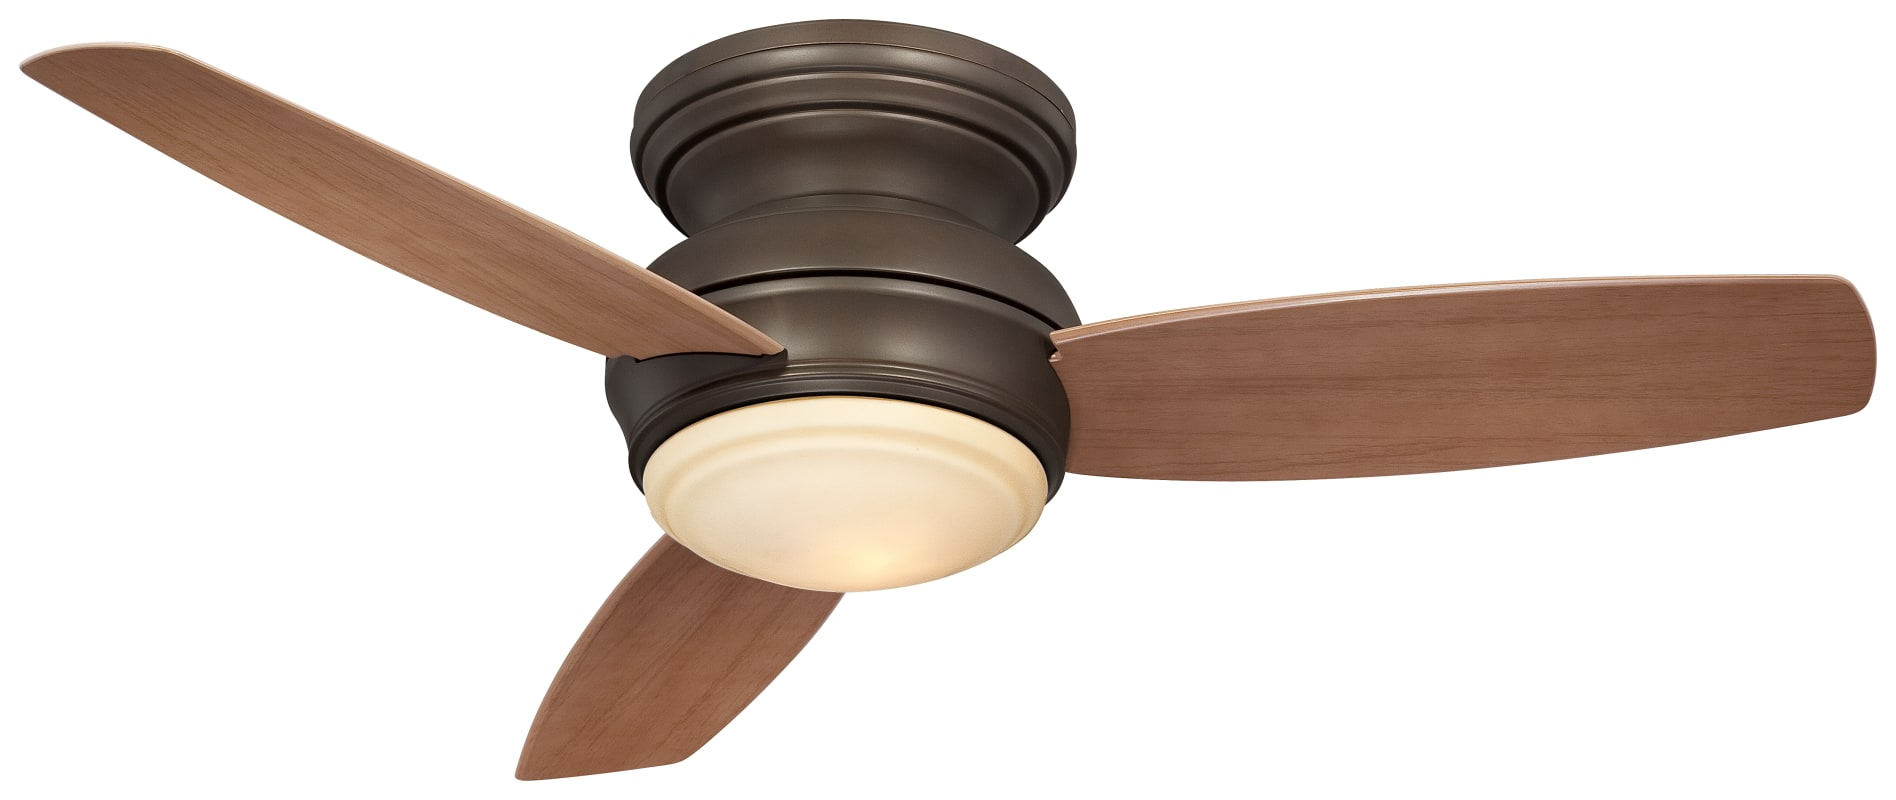 "MinkaAire Traditional Concept 44 3 Blade 44"" Flush Mount"